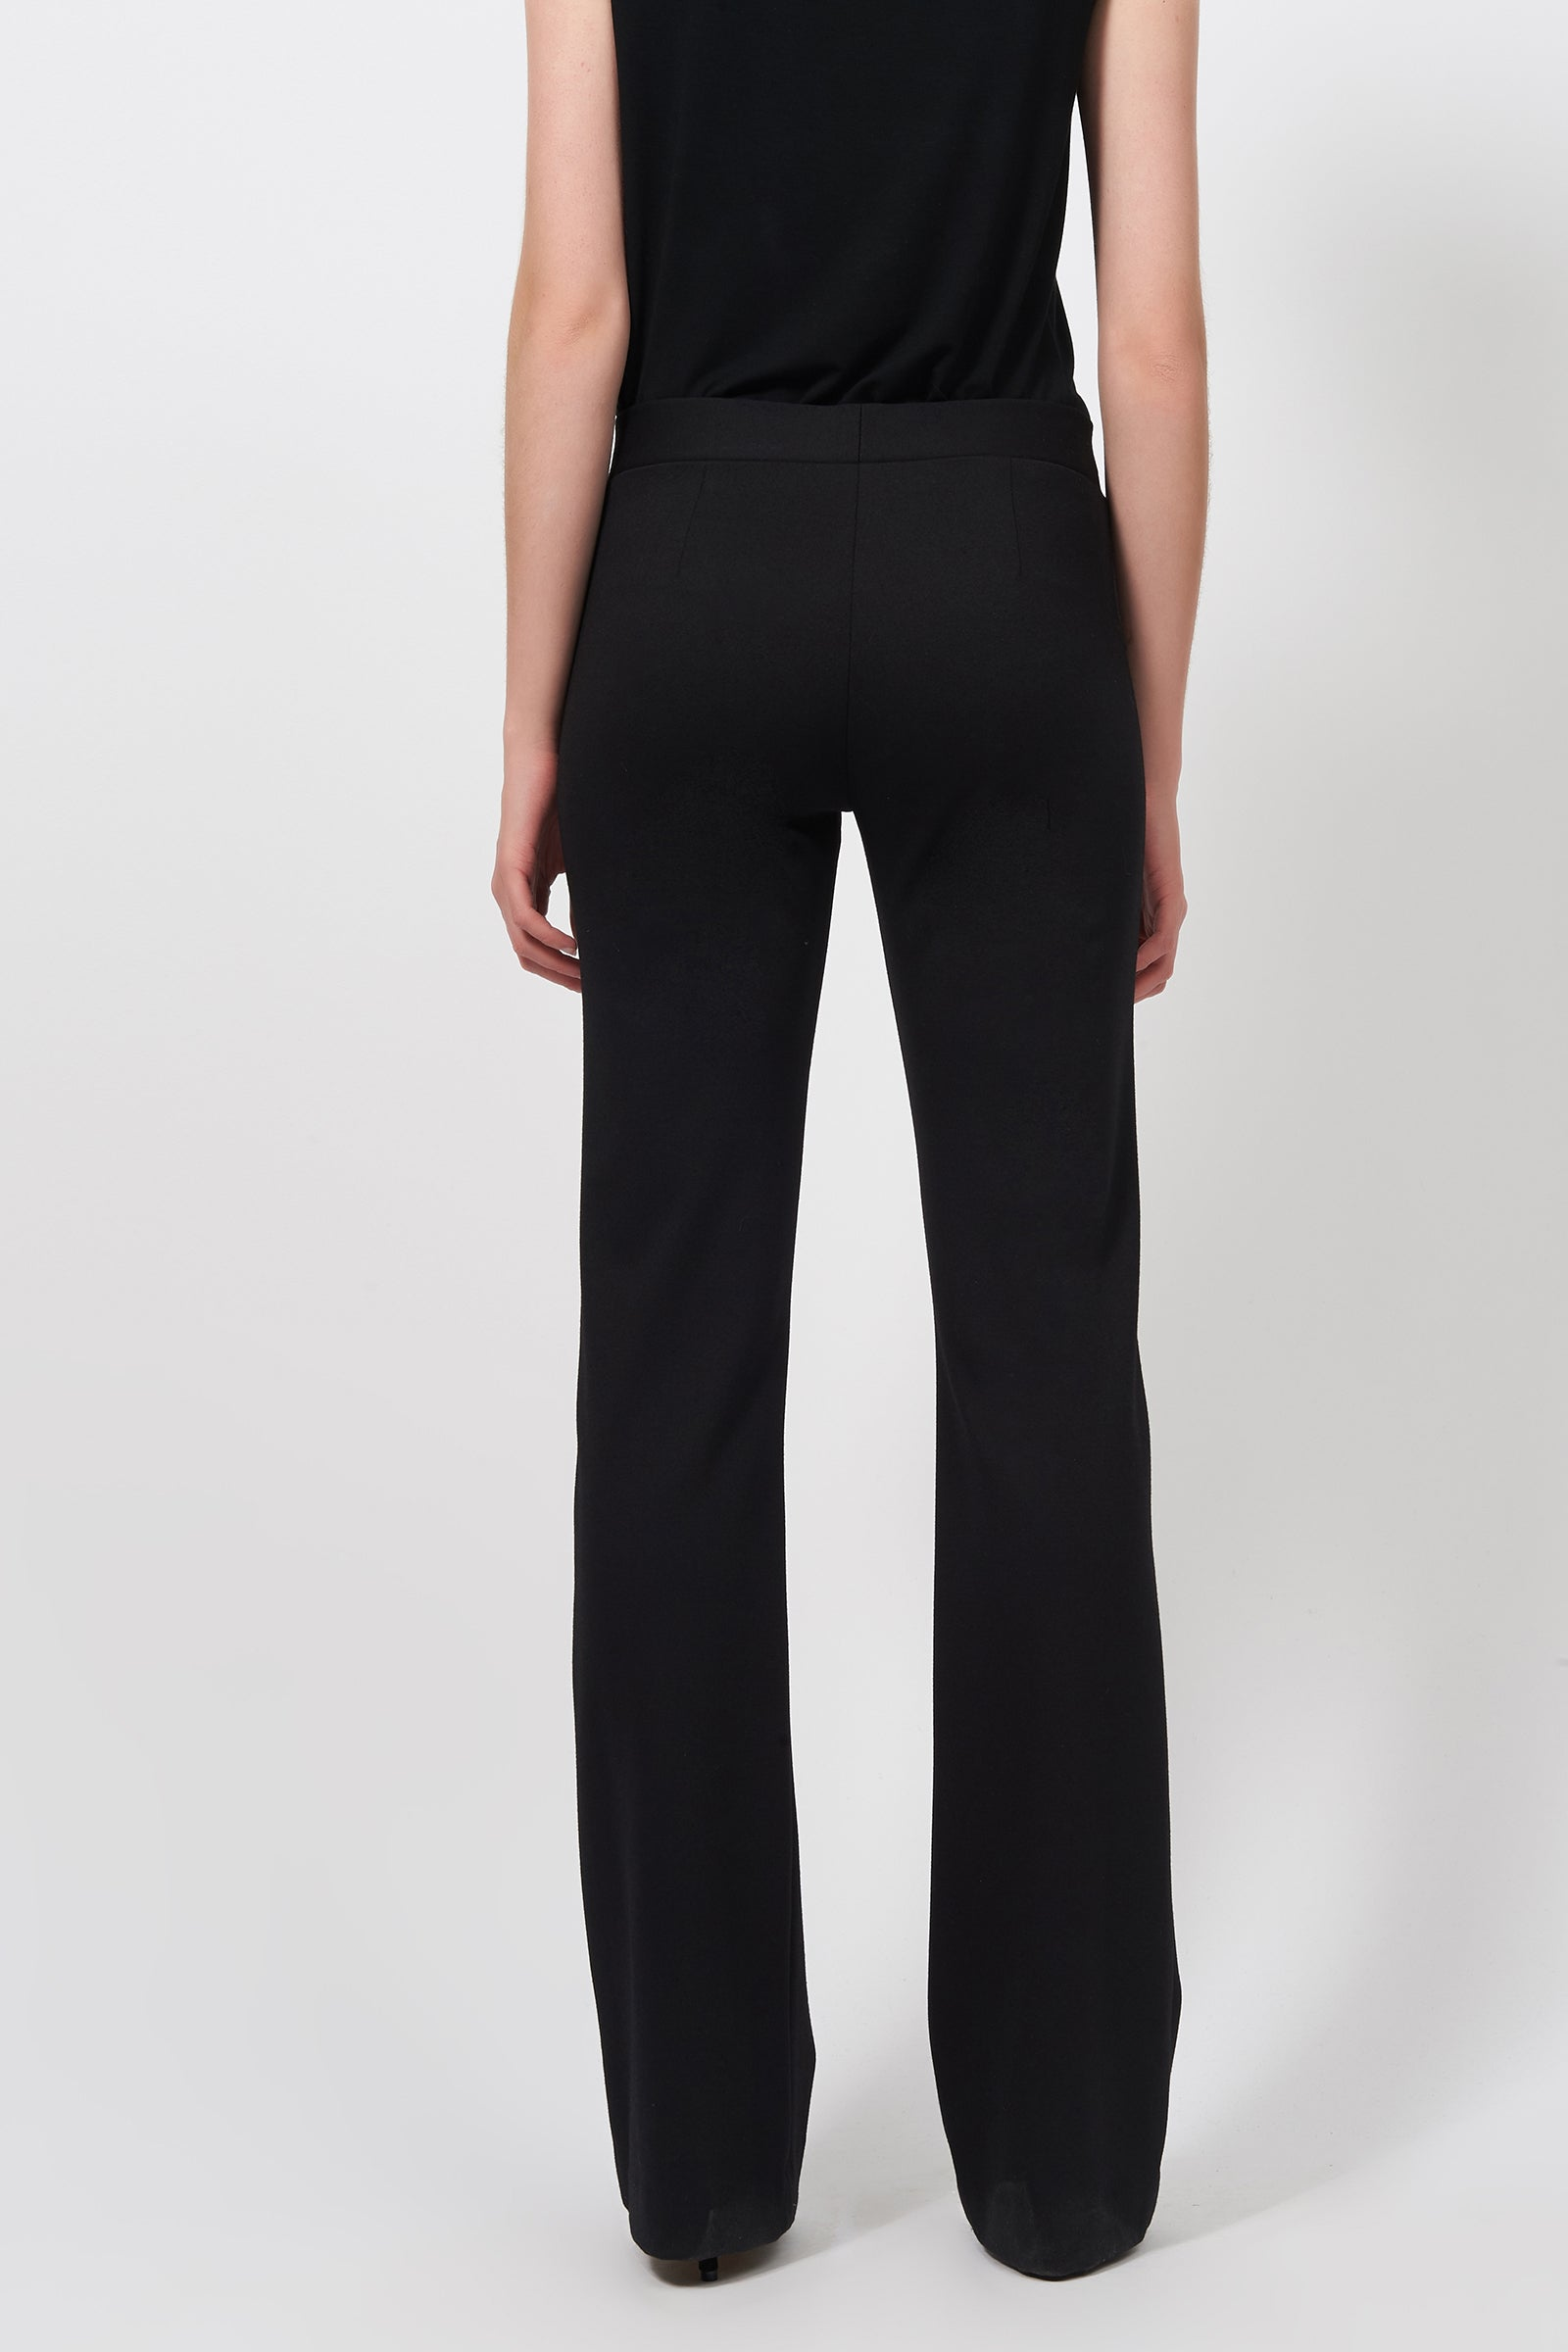 Kal Rieman Pintuck Ponte Column Pant in Black on Model Back View